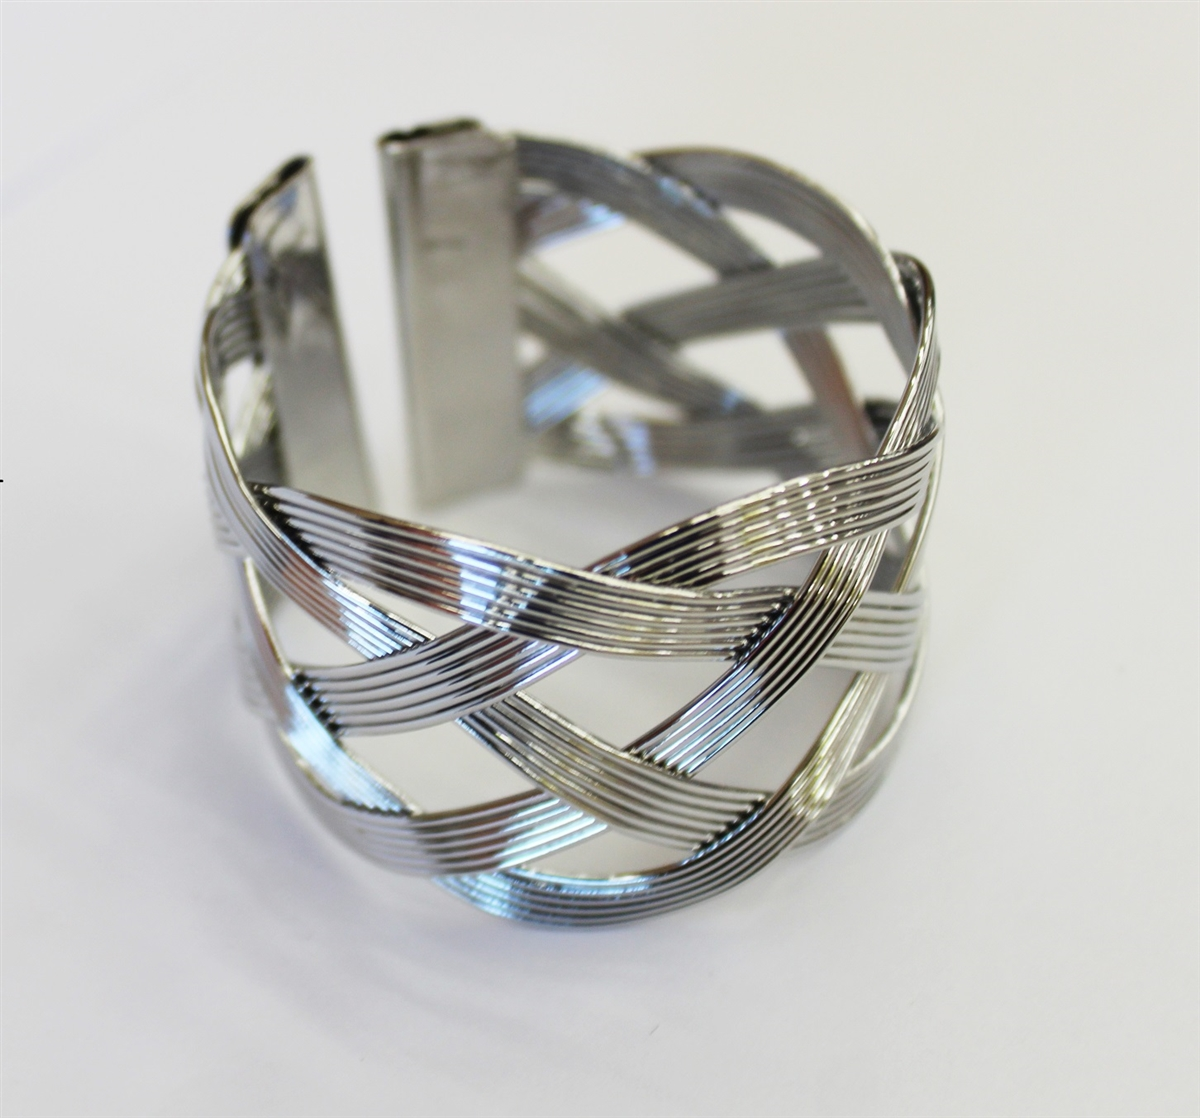 Silver Wavy Design Napkin Rings - Set of 4